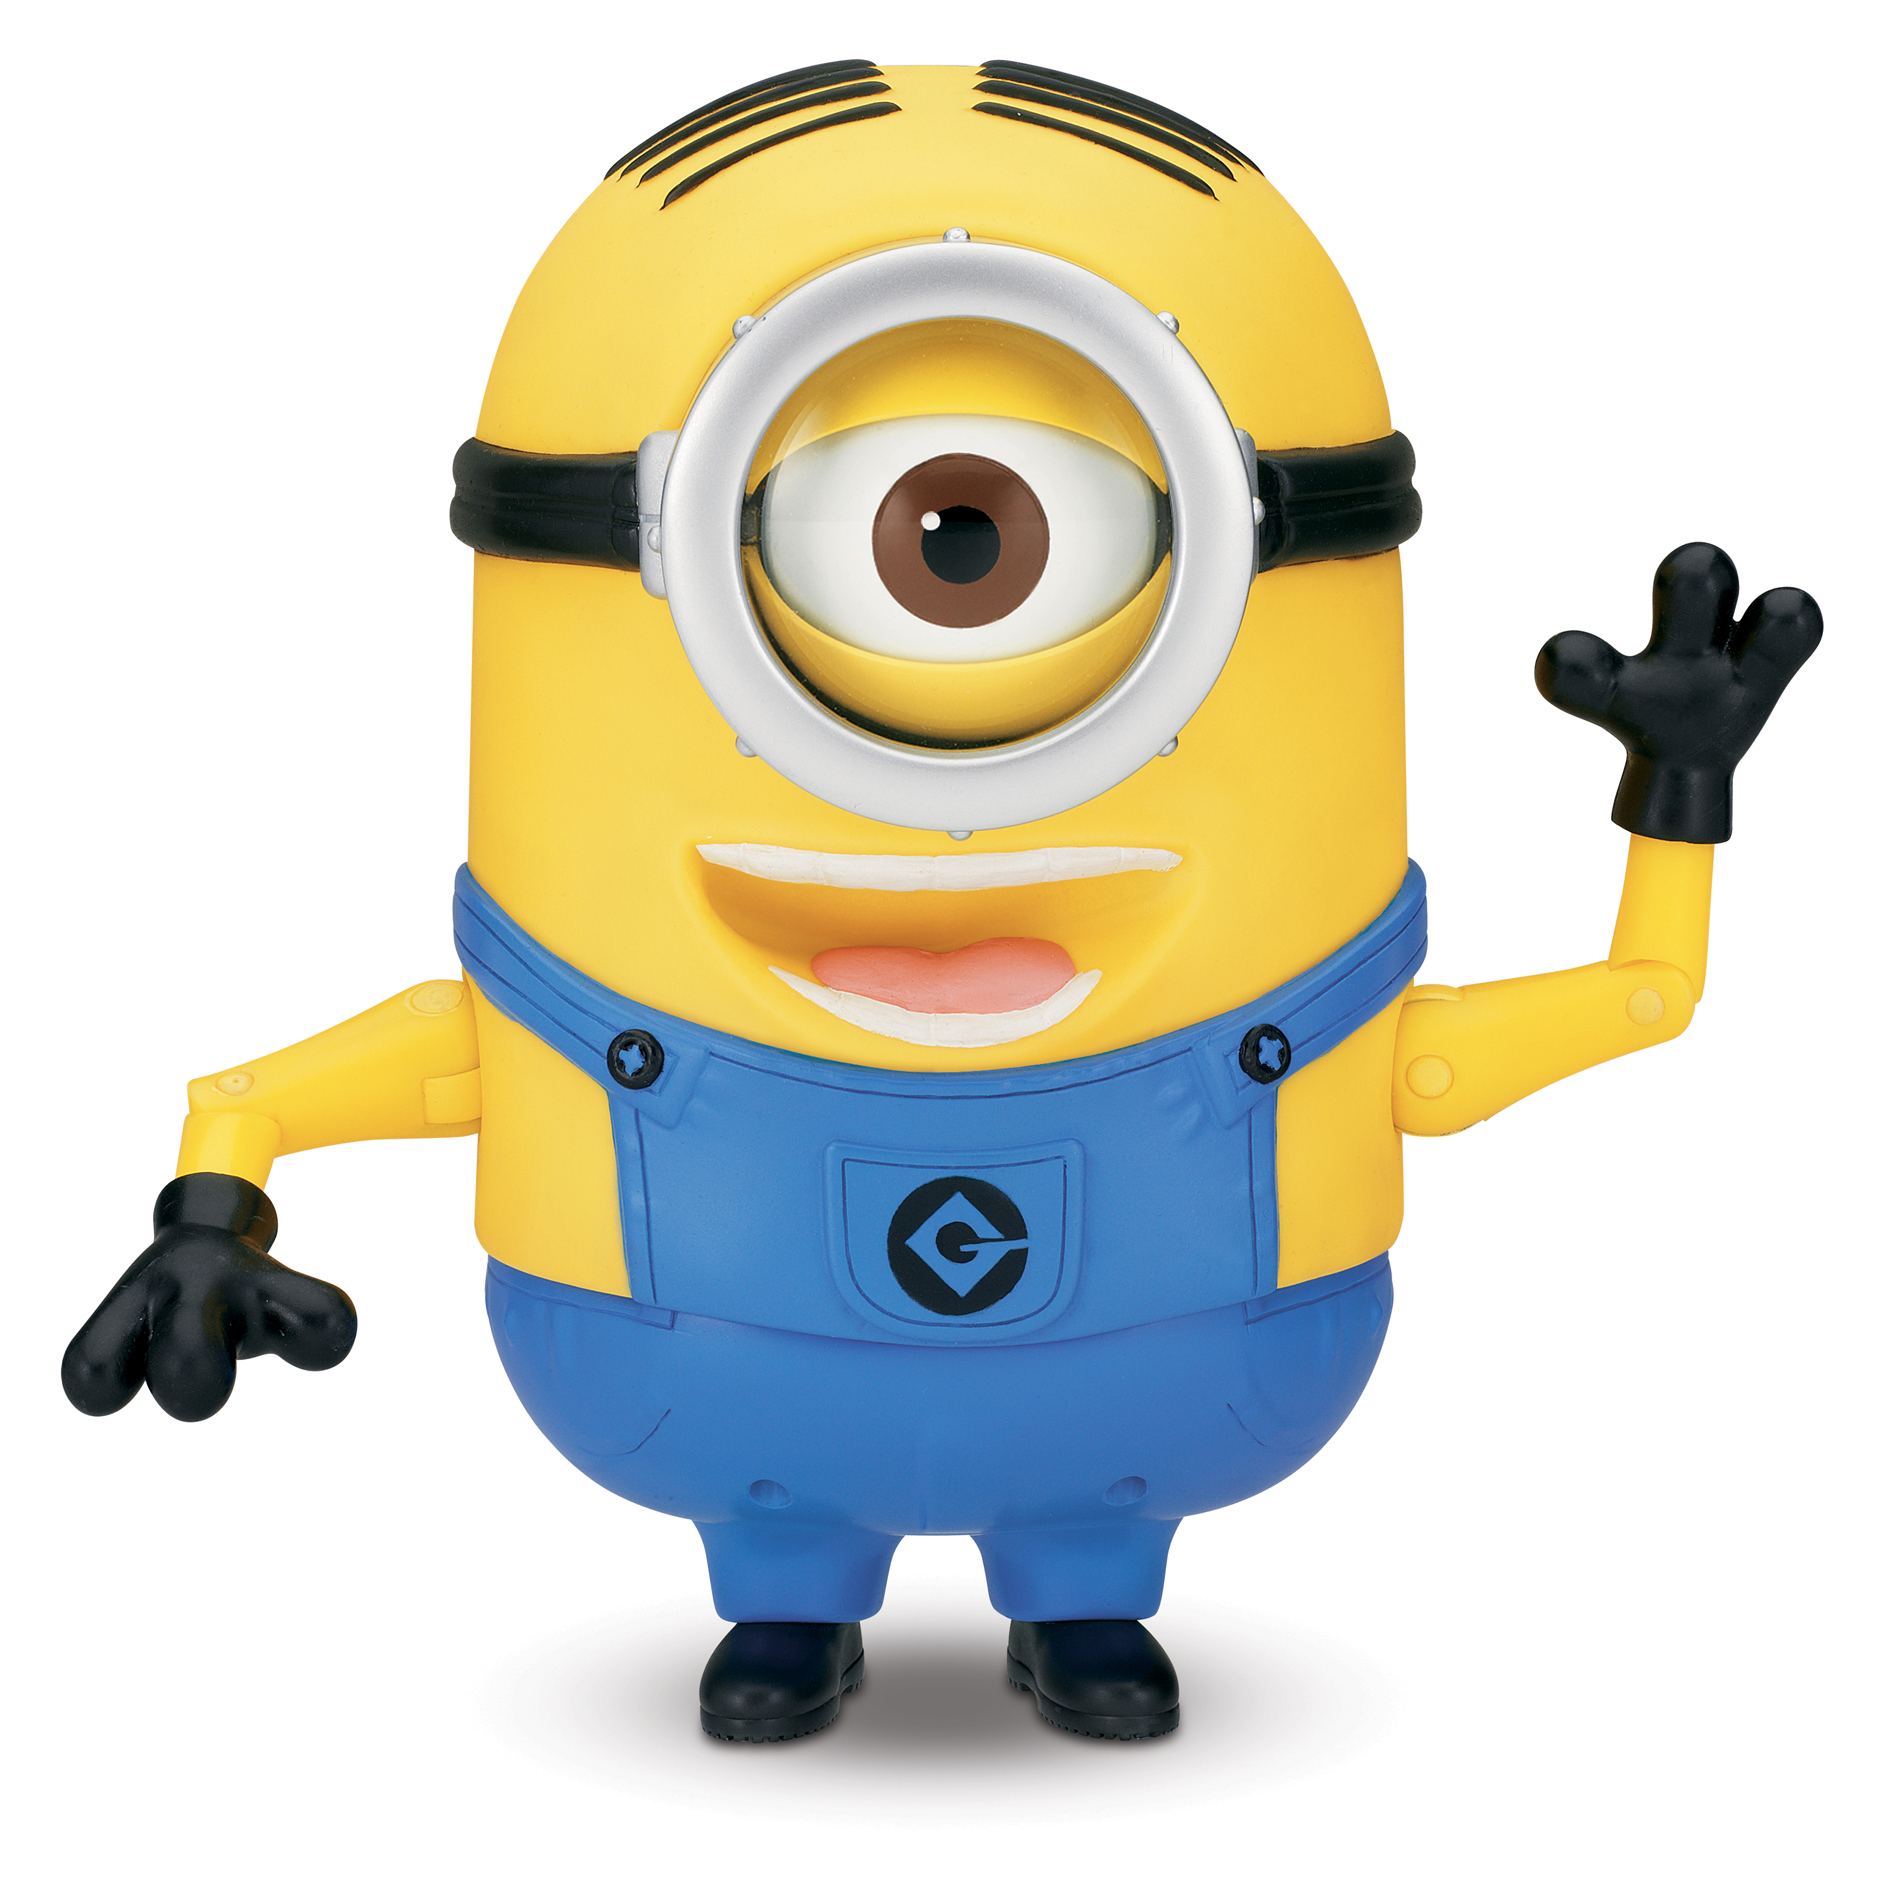 "8"""" Minion Stuart Laughing Action Figure - Despicable Me 2, Yellow"" 004W005637221002"